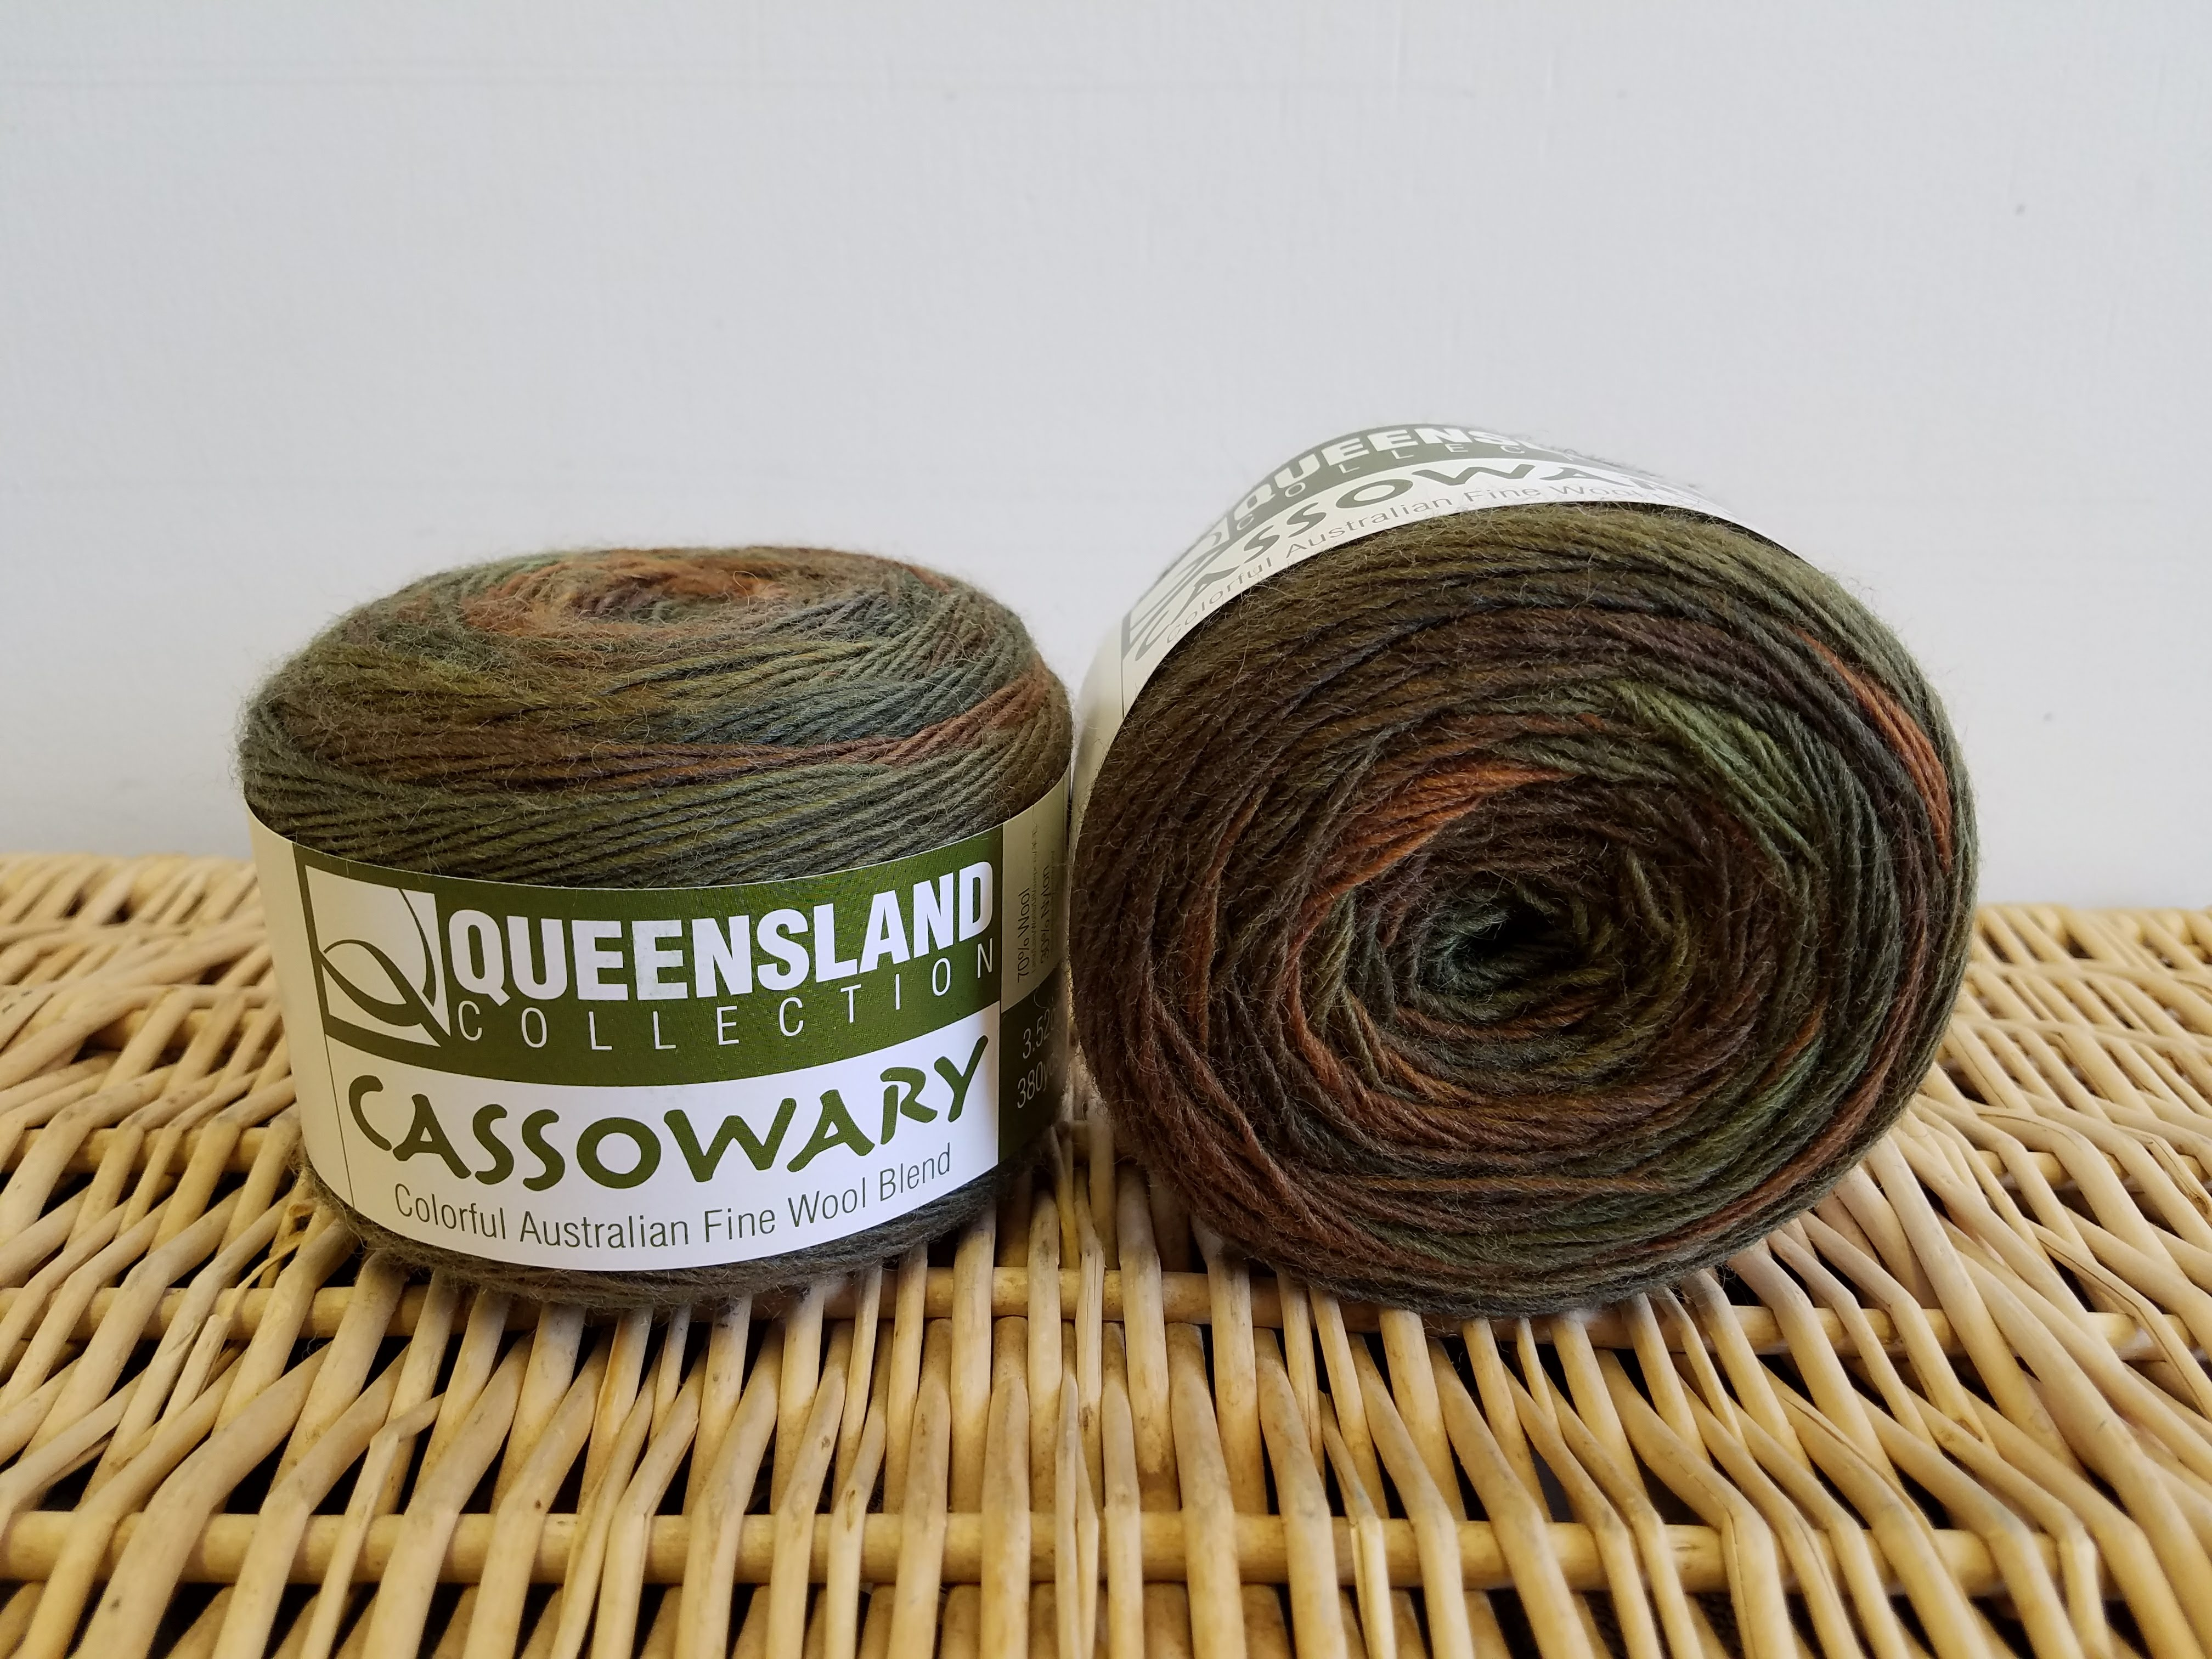 Cassowary by Queensland Collection